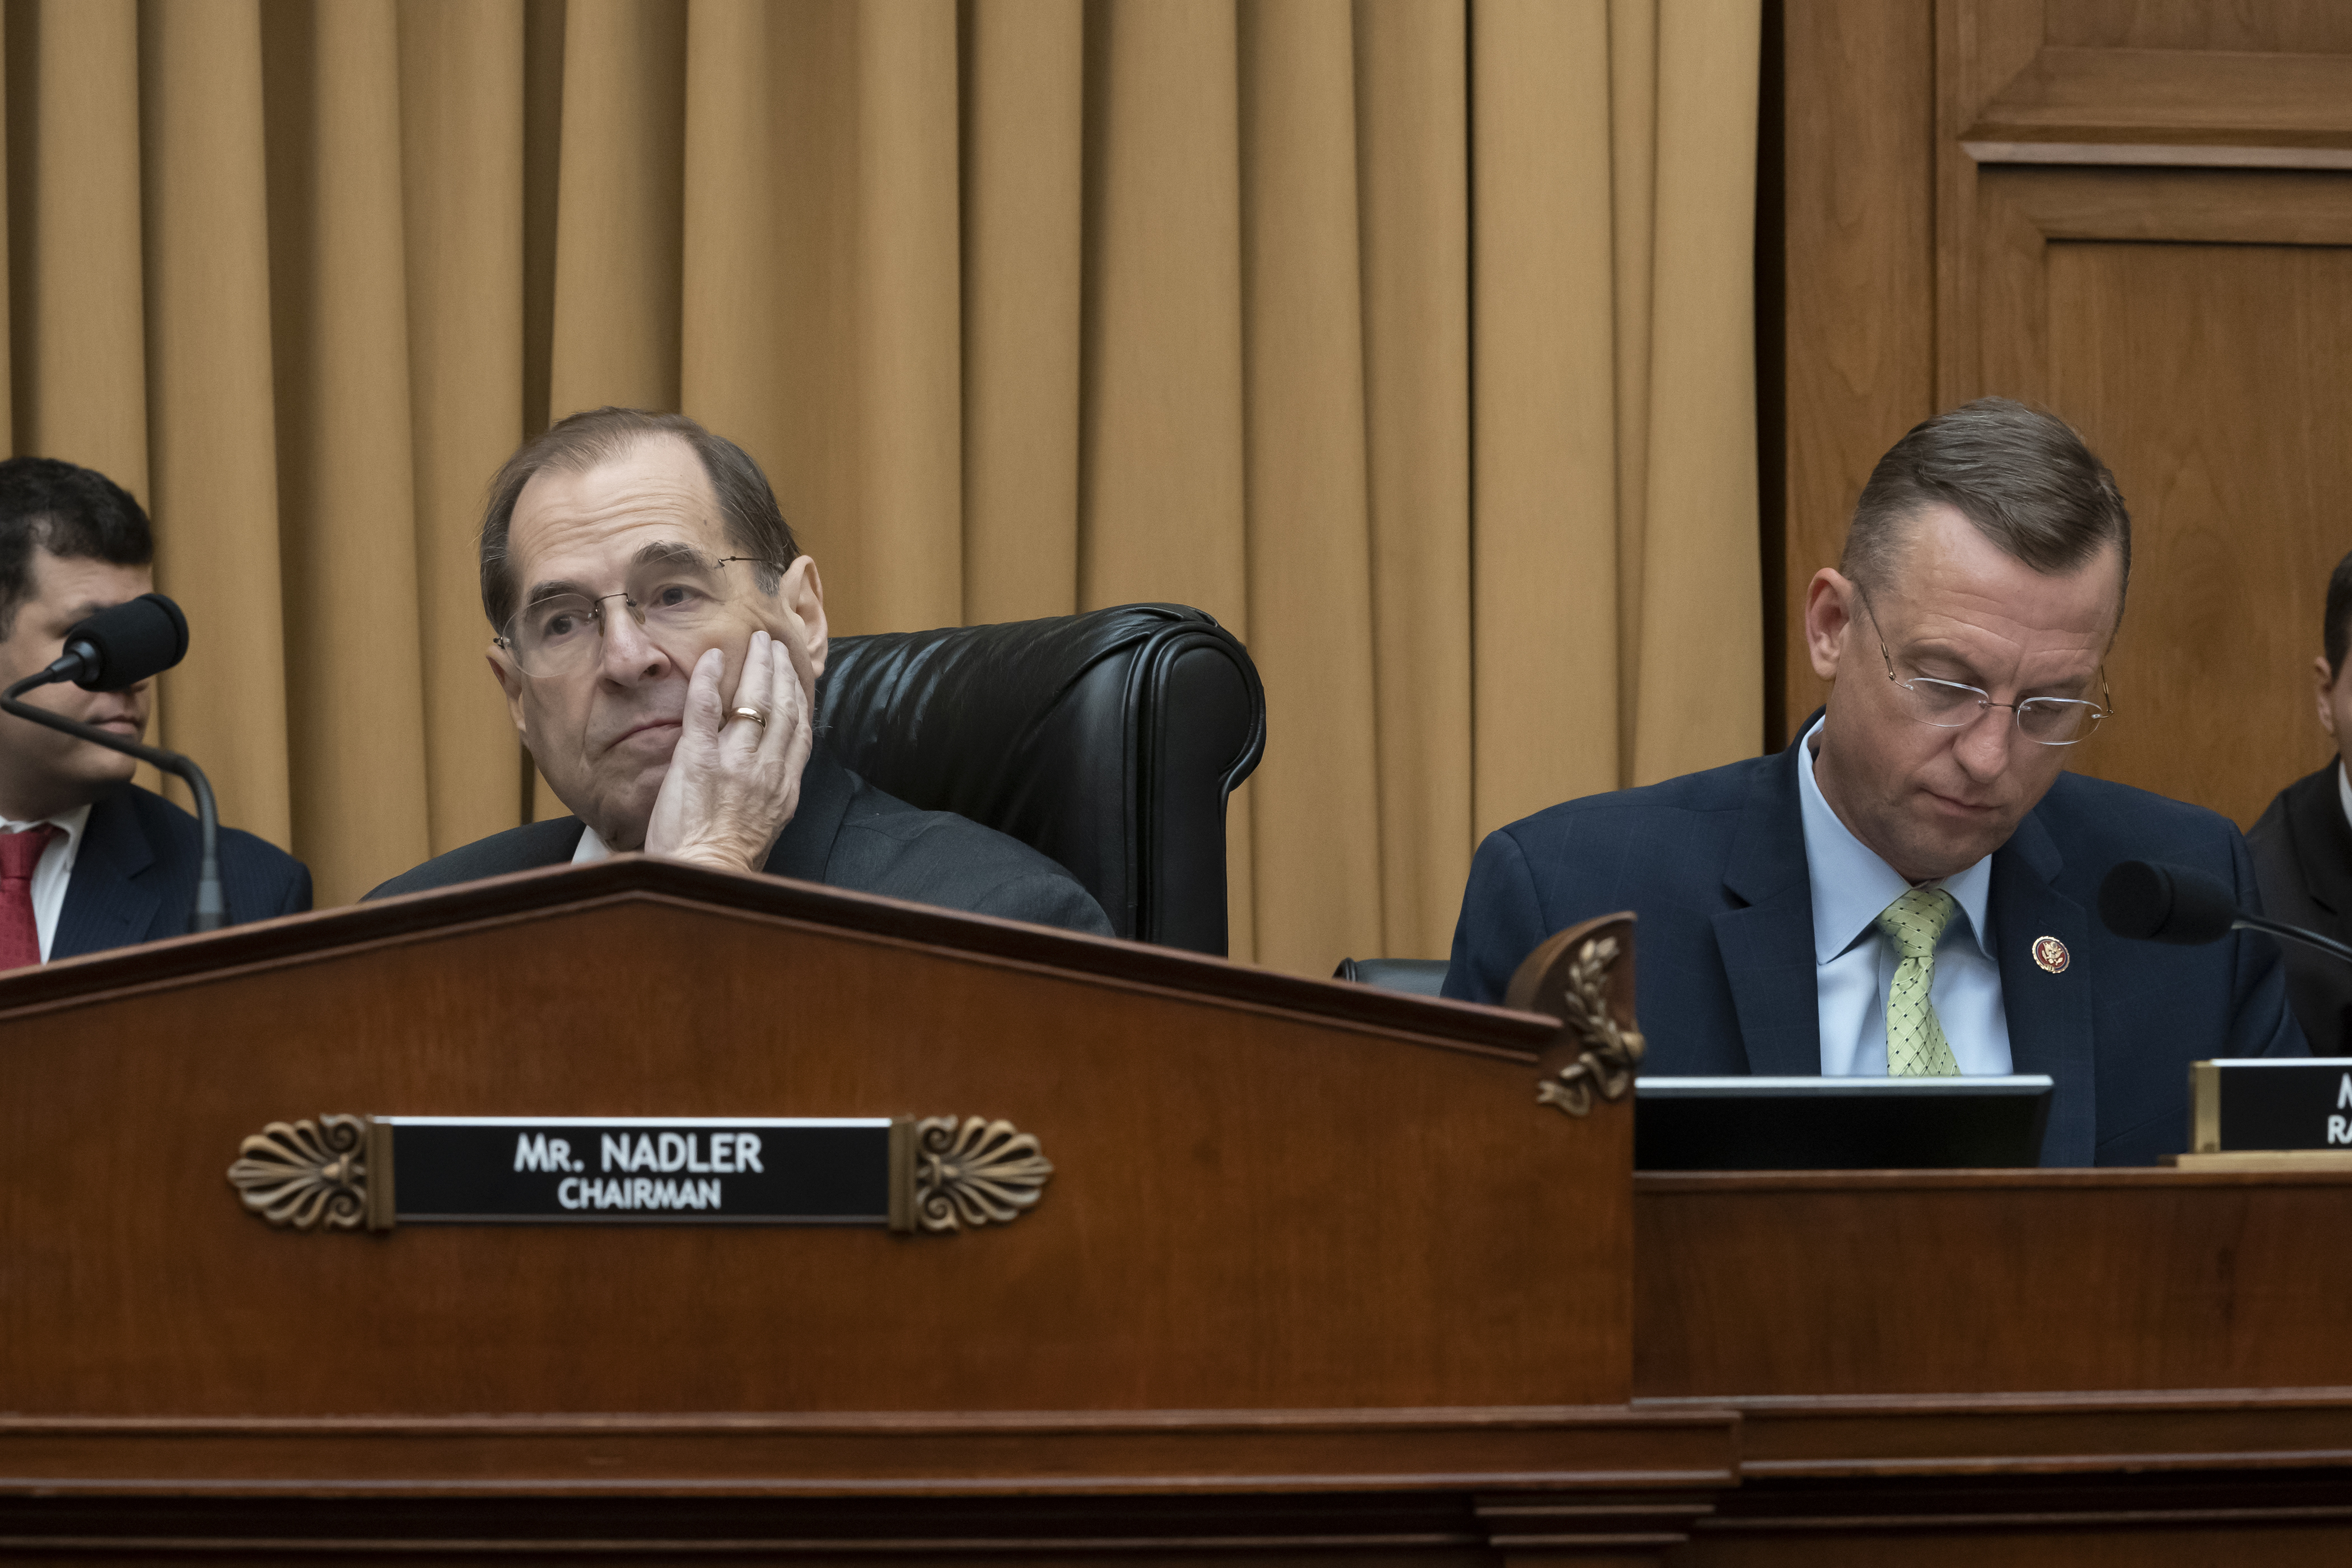 House Judiciary Committee Chair Jerrold Nadler, D-N.Y., joined at right by Rep. Doug Collins, R-Georgia, the ranking member, waits to start a hearing on the Mueller report without witness Attorney General William Barr who refused to appear, May 2, 20...